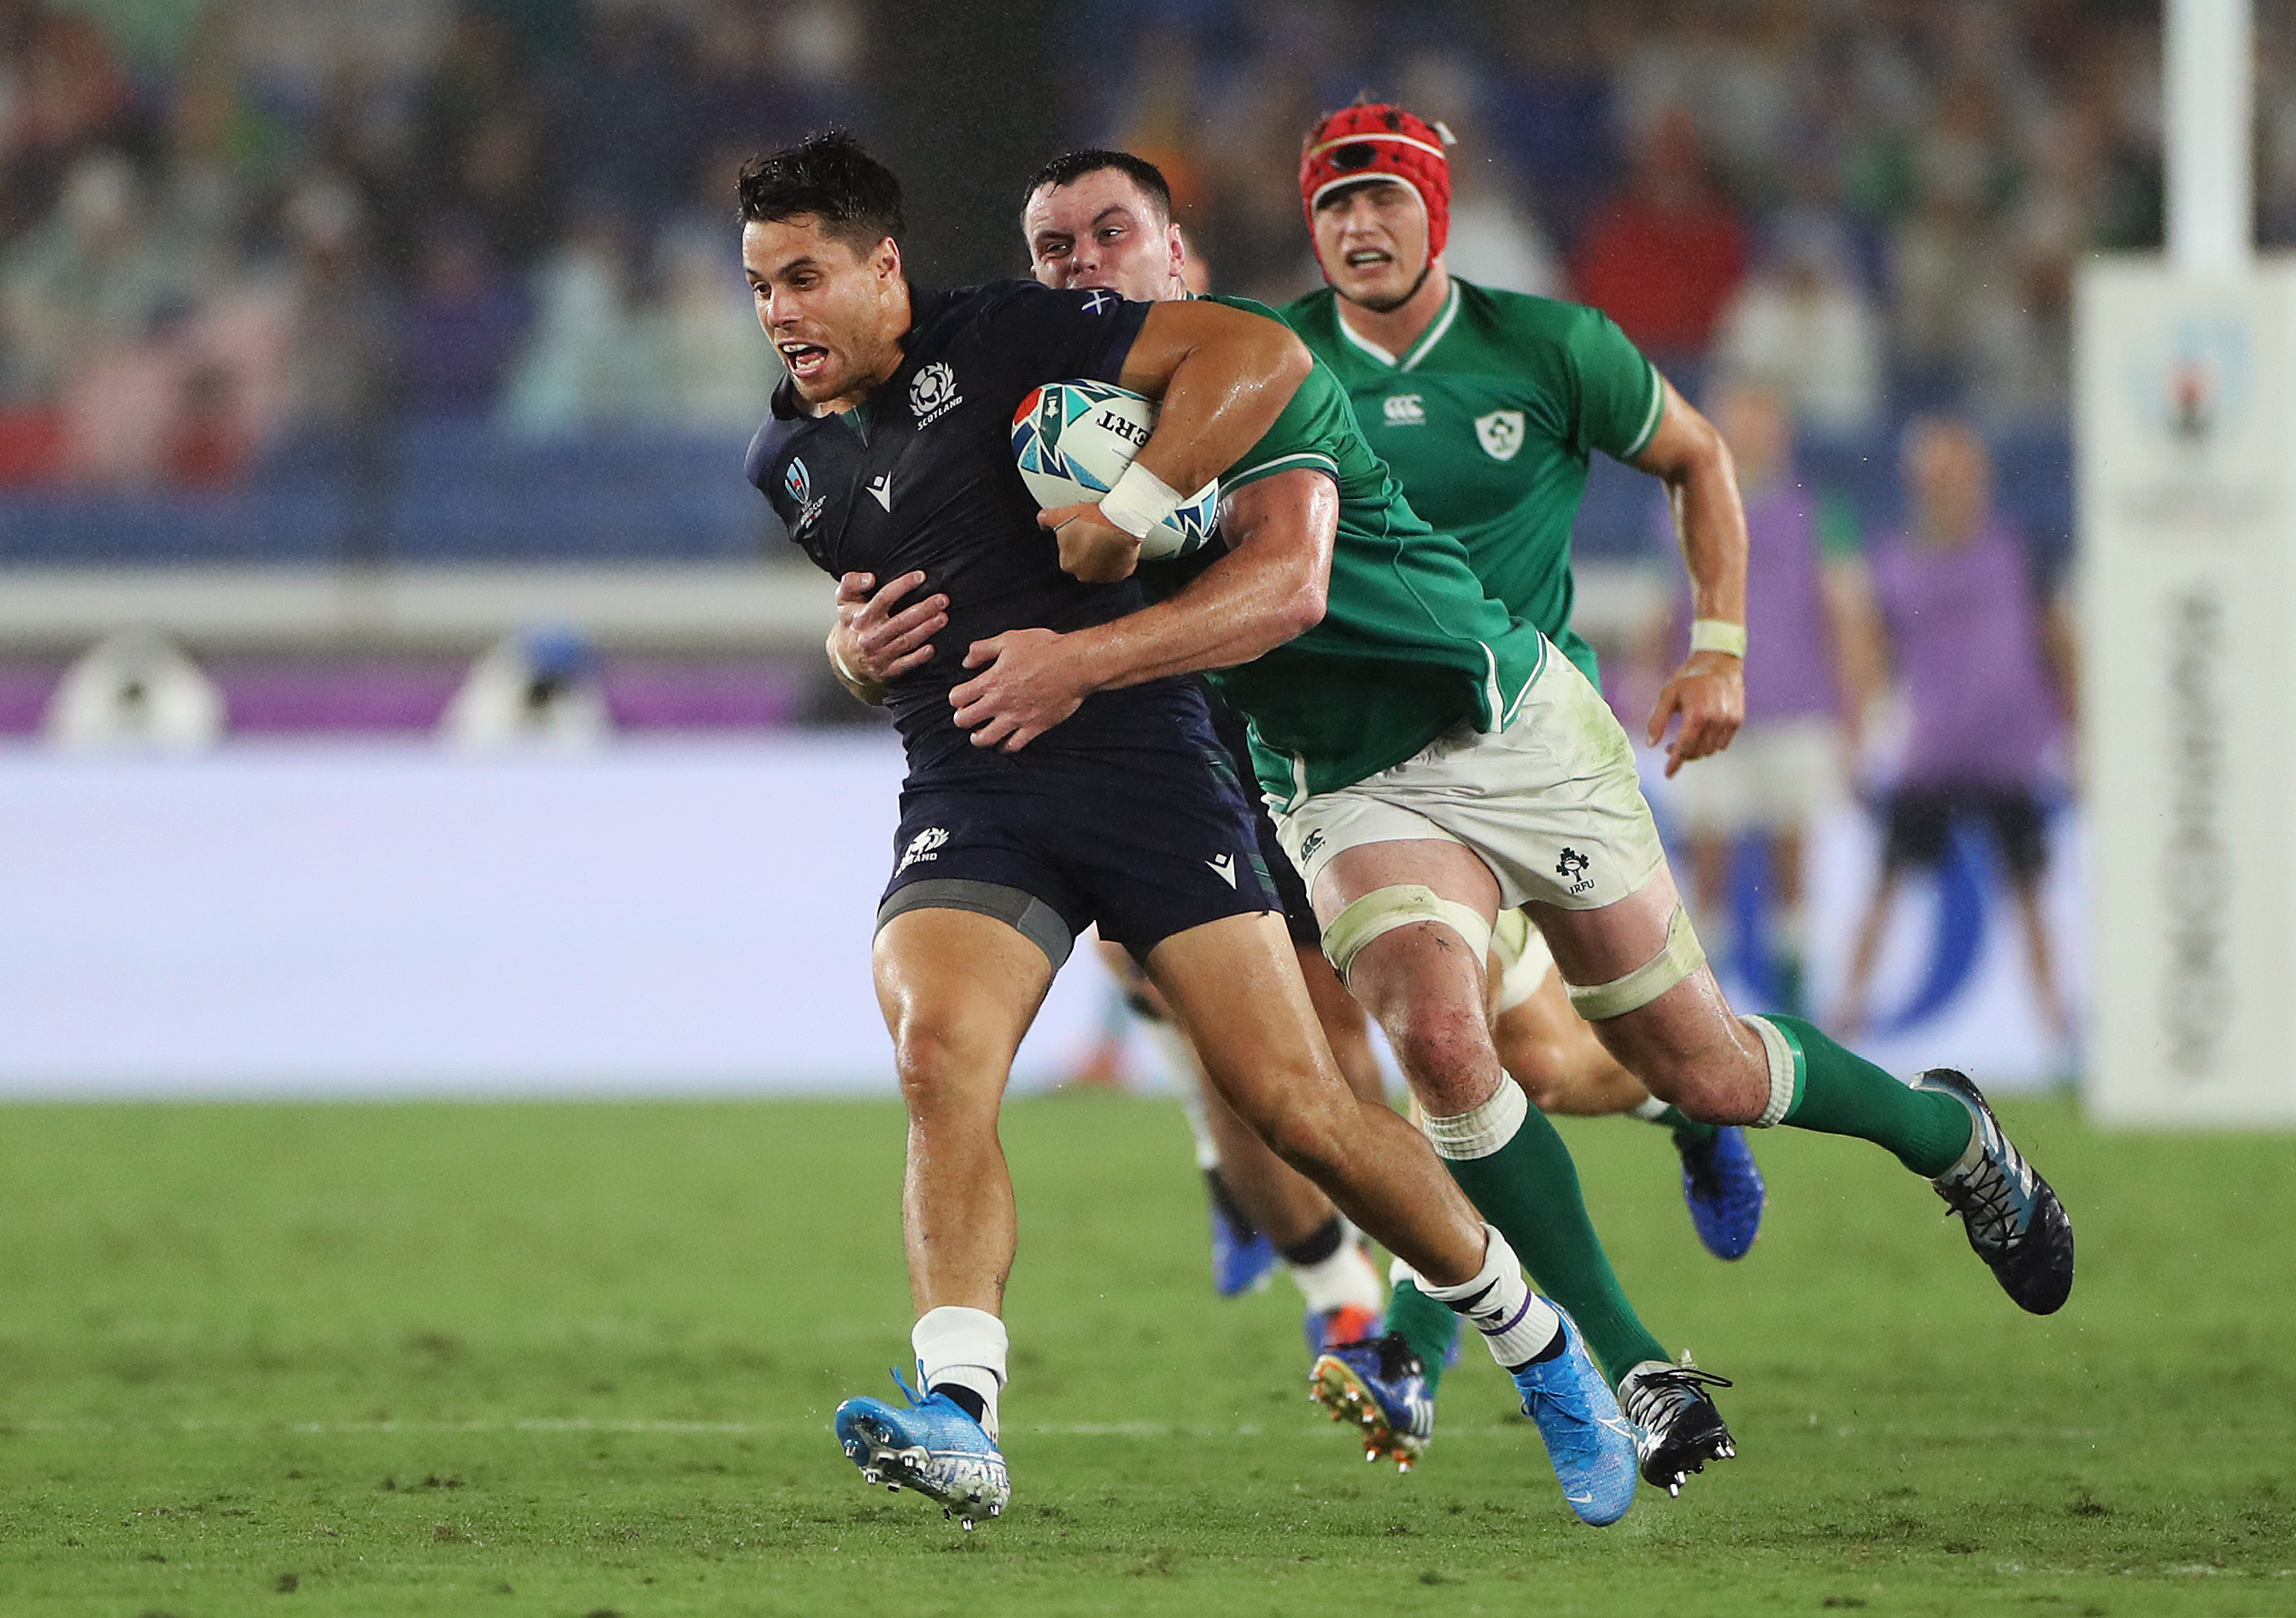 Sean Maitland is looking forward to playing his Samoan cousin in Kobe.